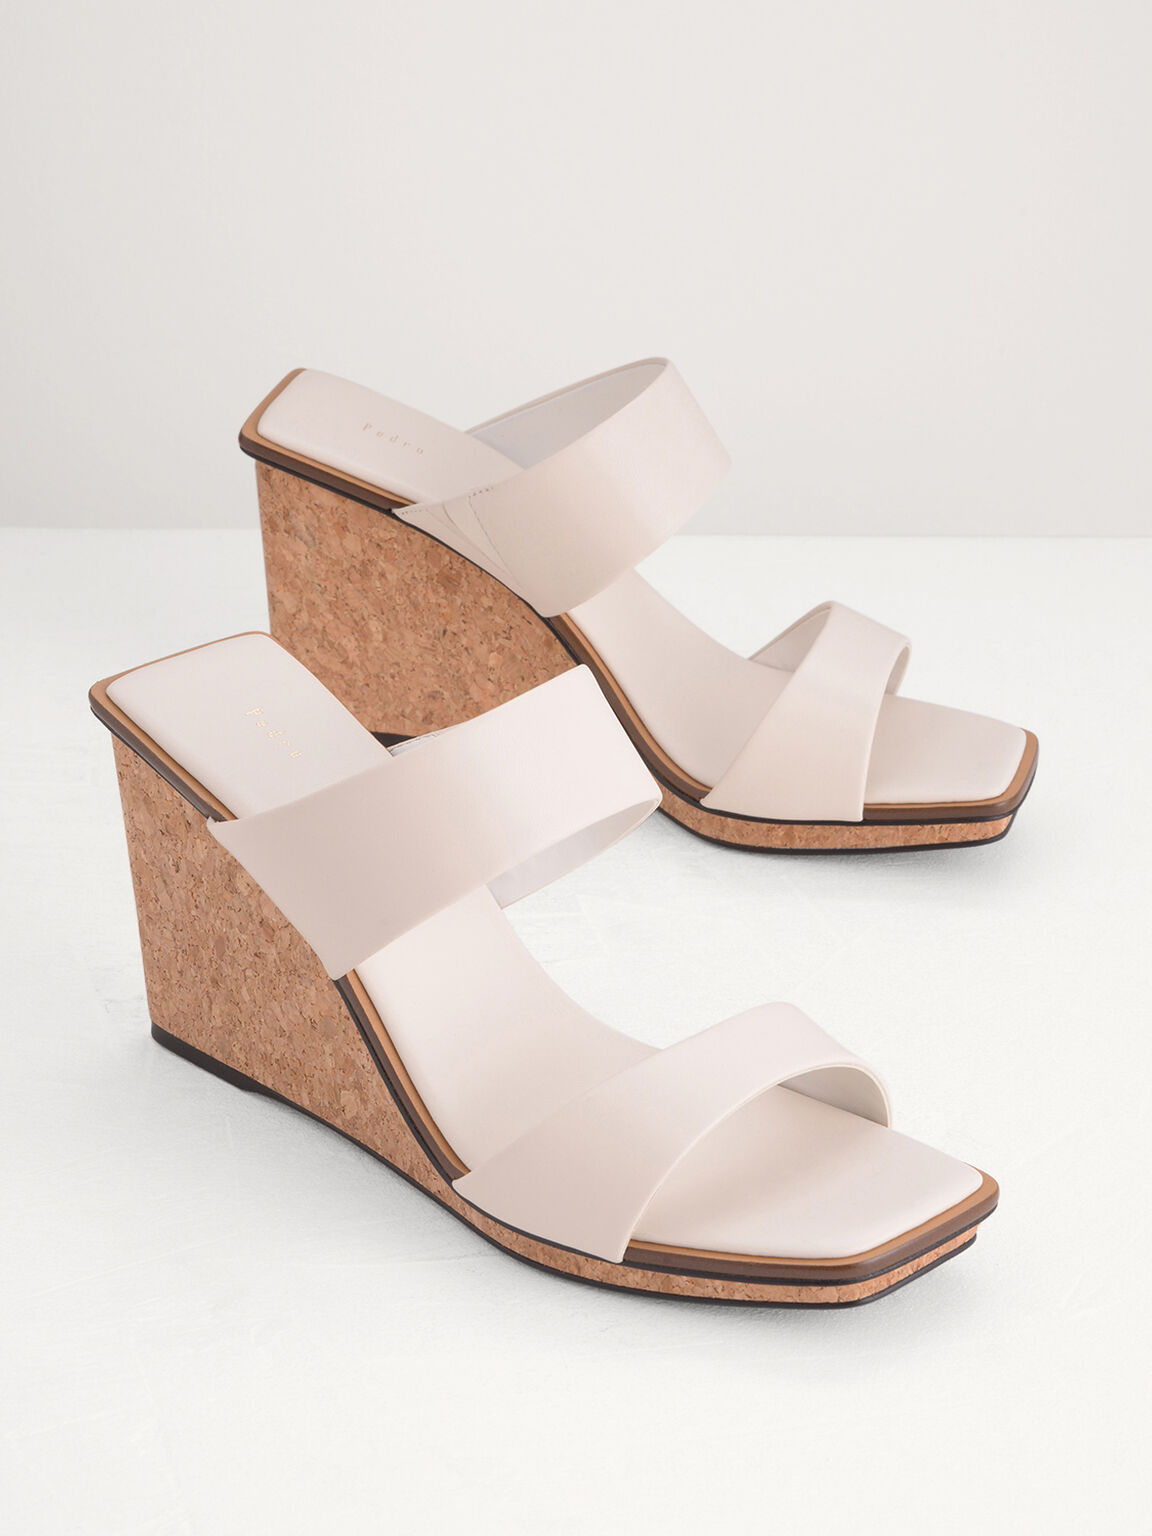 Strappy Wedge Sandals, White, hi-res